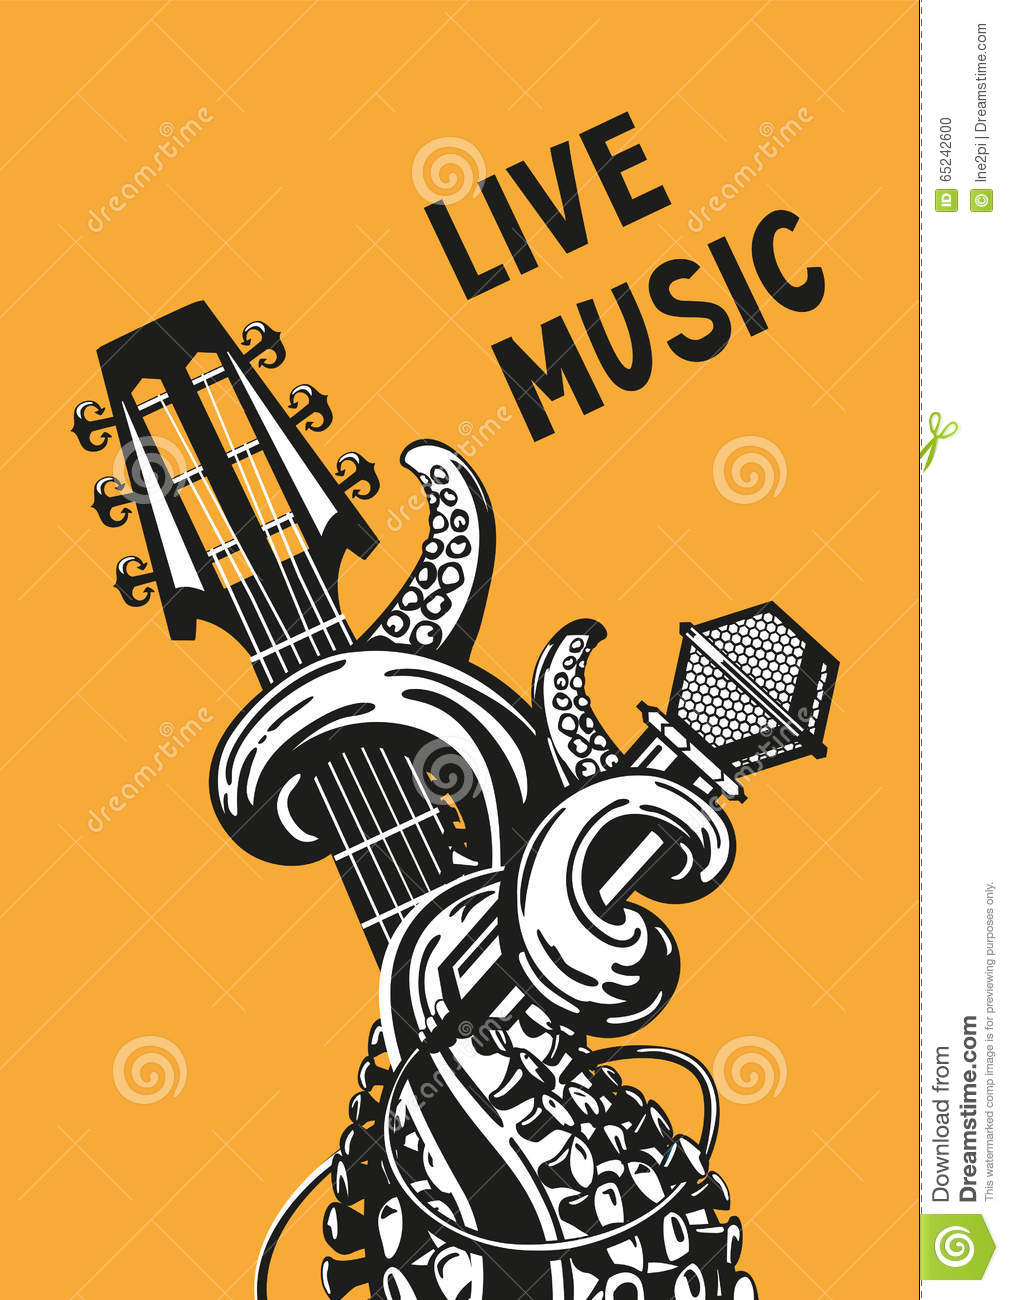 Live music poster stock vector. Illustration of guitar ...